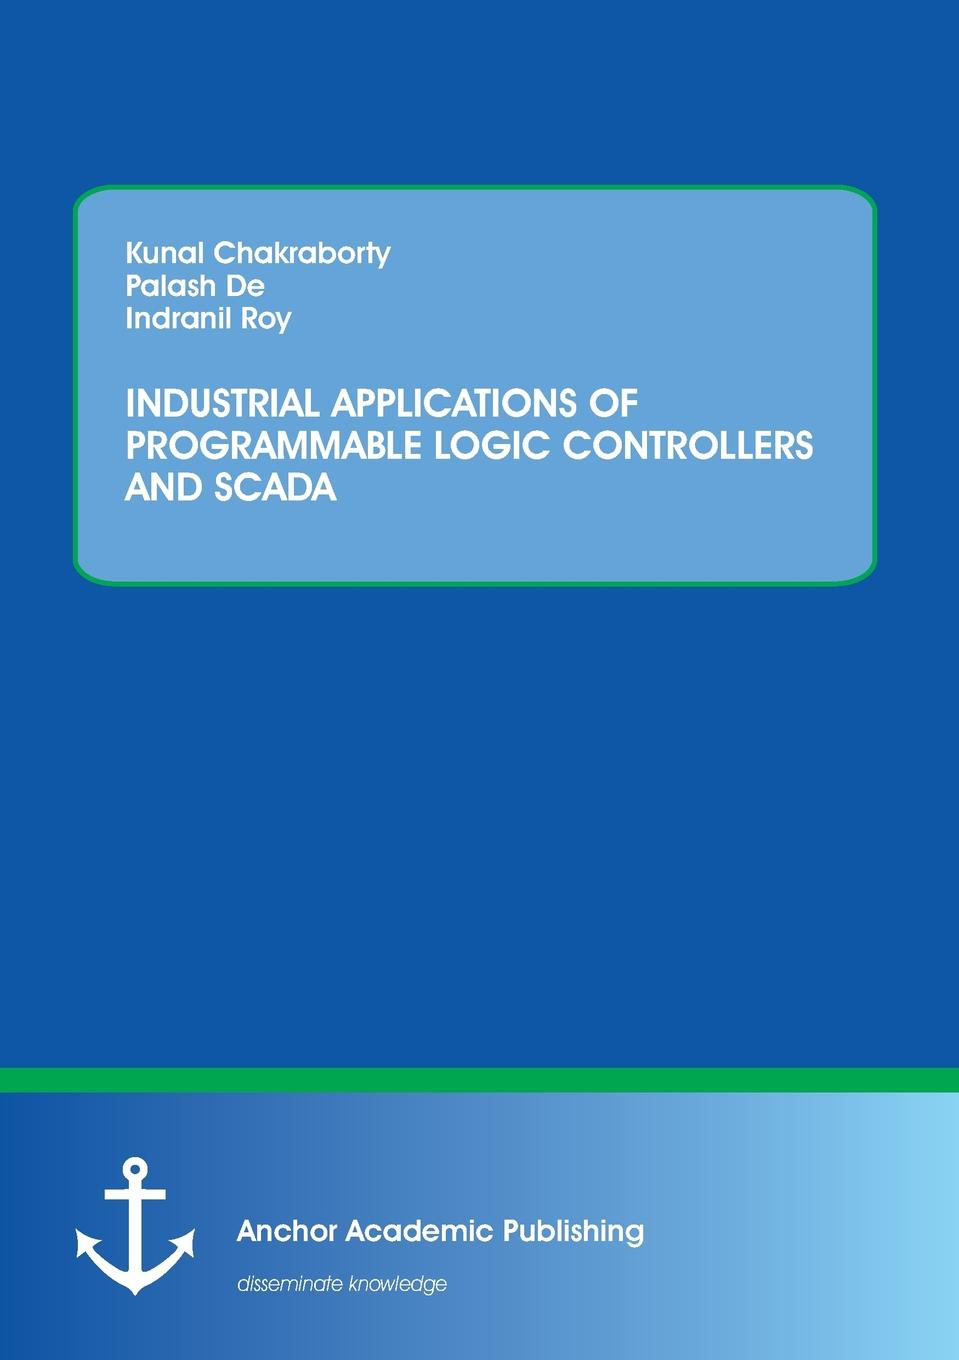 Kunal Chakraborty, Palash De, Indranil Roy INDUSTRIAL APPLICATIONS OF PROGRAMMABLE LOGIC CONTROLLERS AND SCADA cp1w da021 plc expansion module programmable logic controller new in box